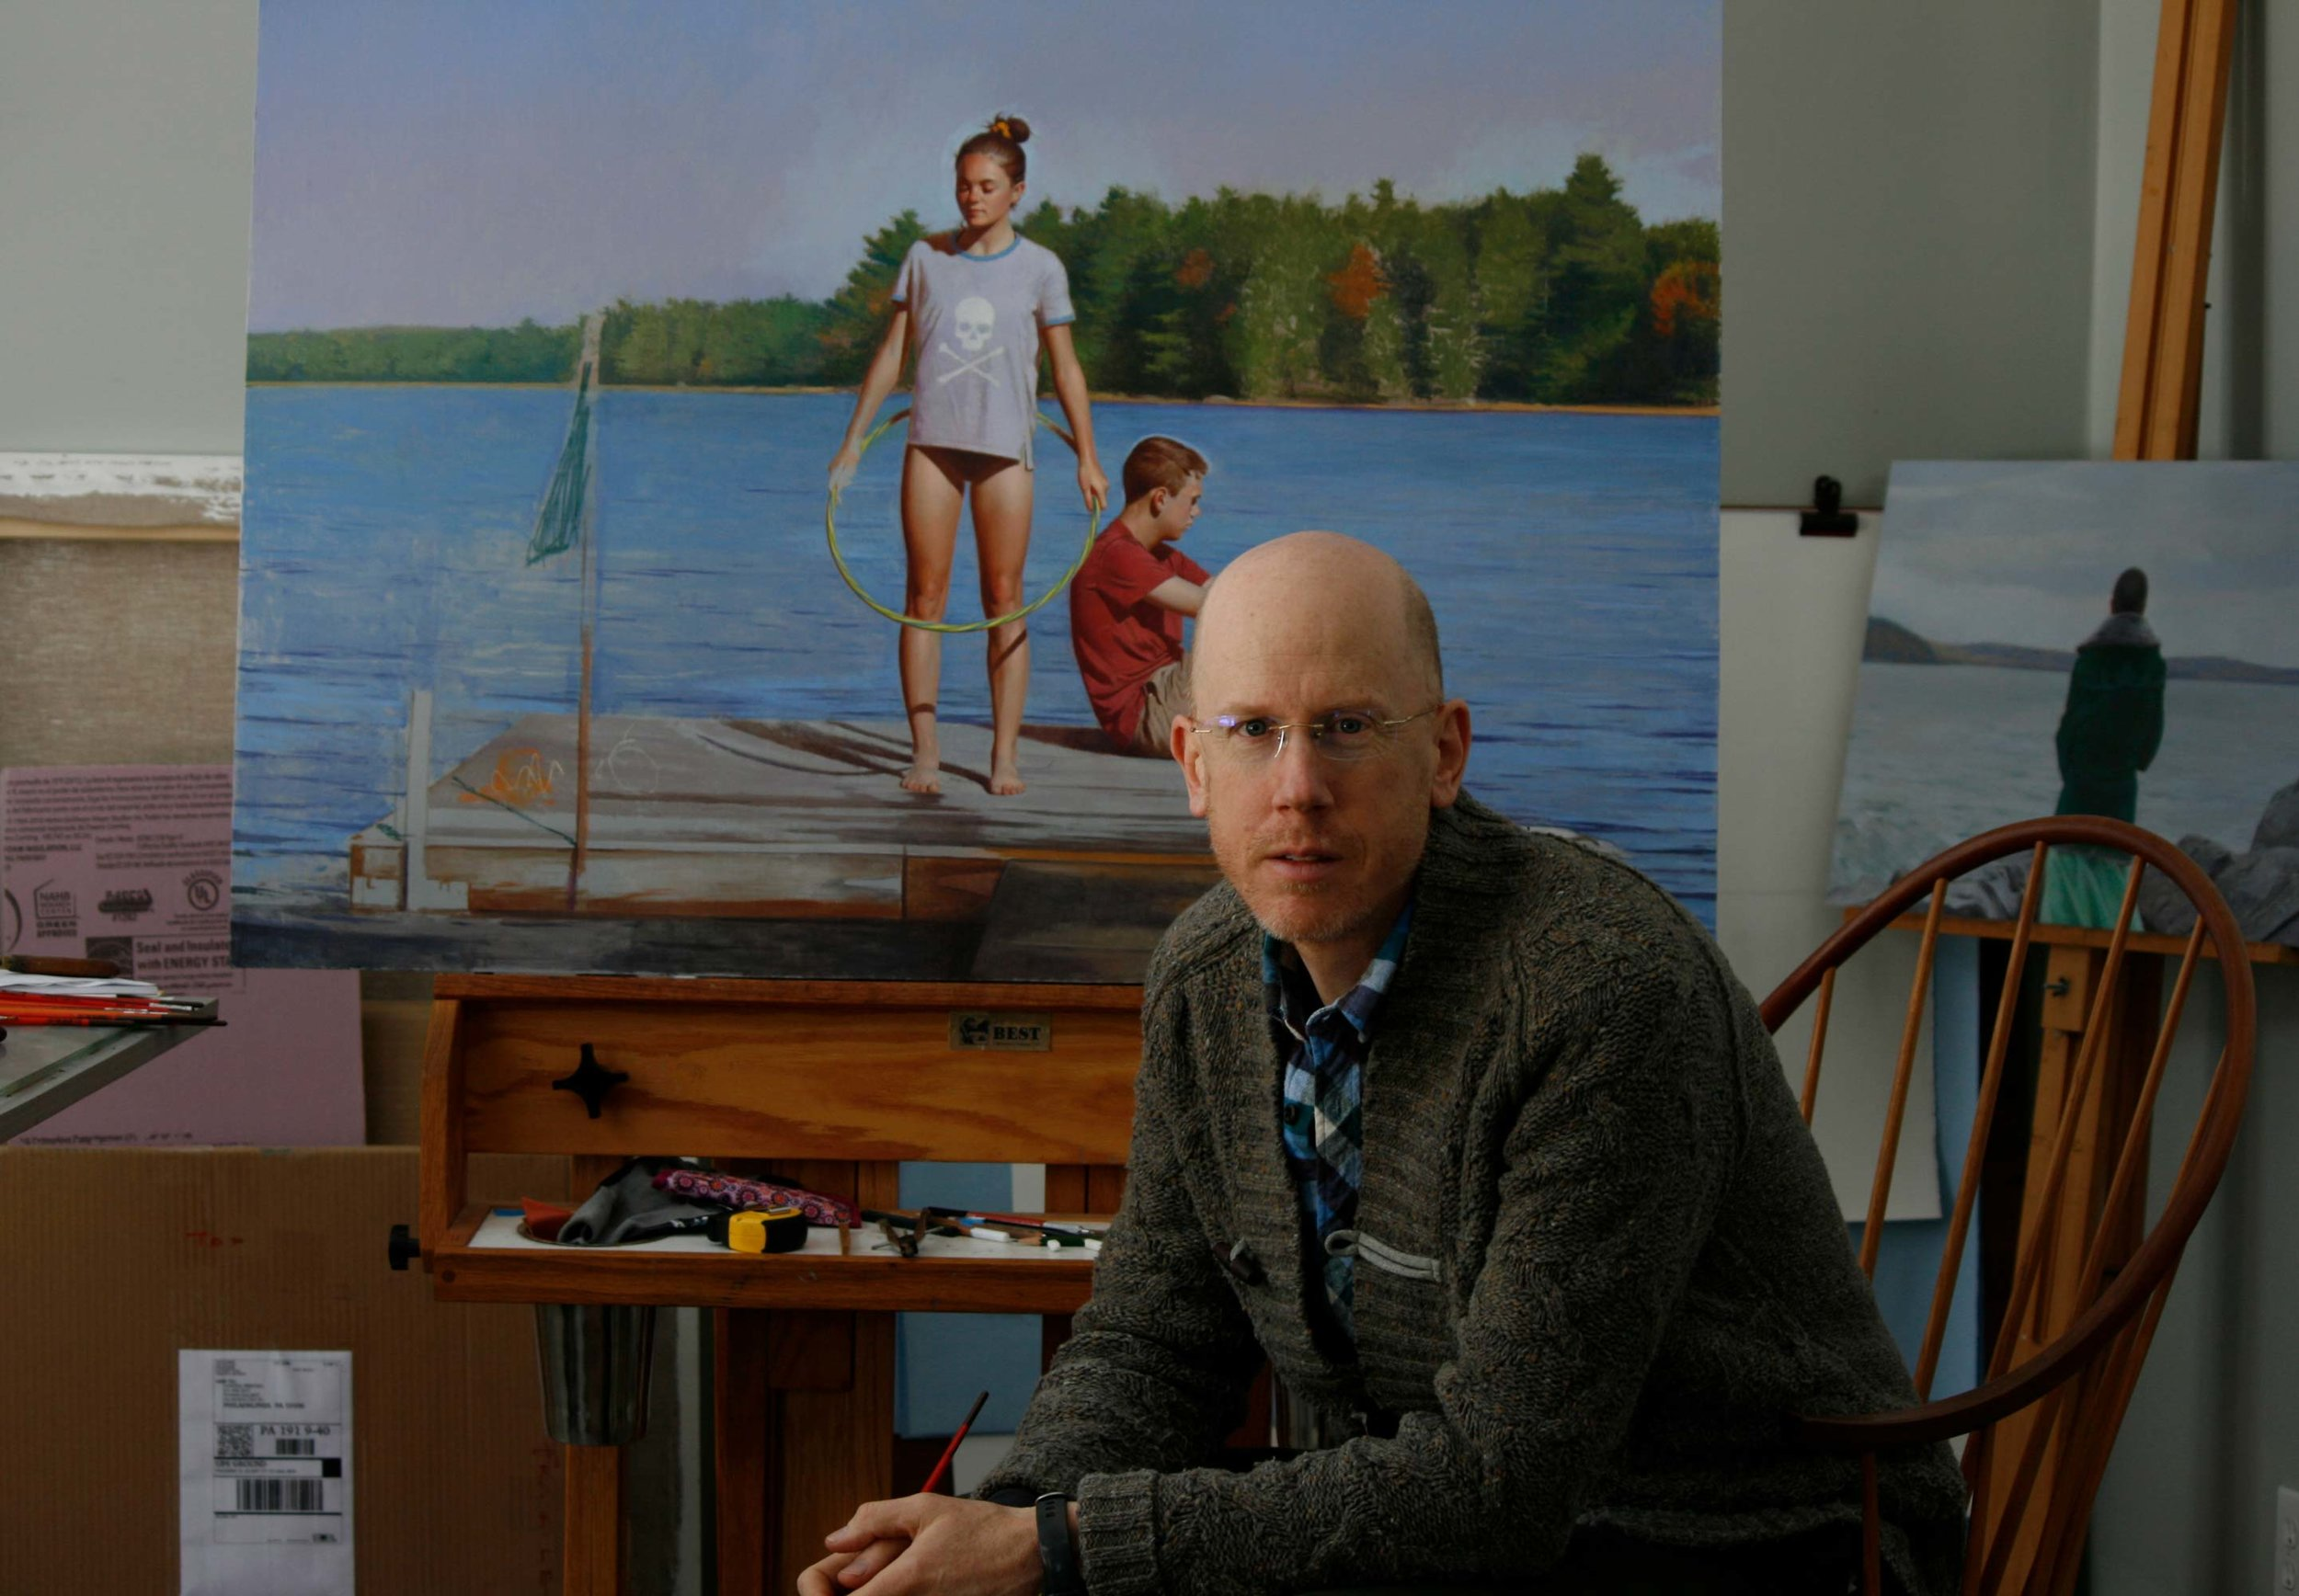 David Graeme Baker in his Hancock studio with a work in progress featuring his son Finn and Finn's friend Addi.